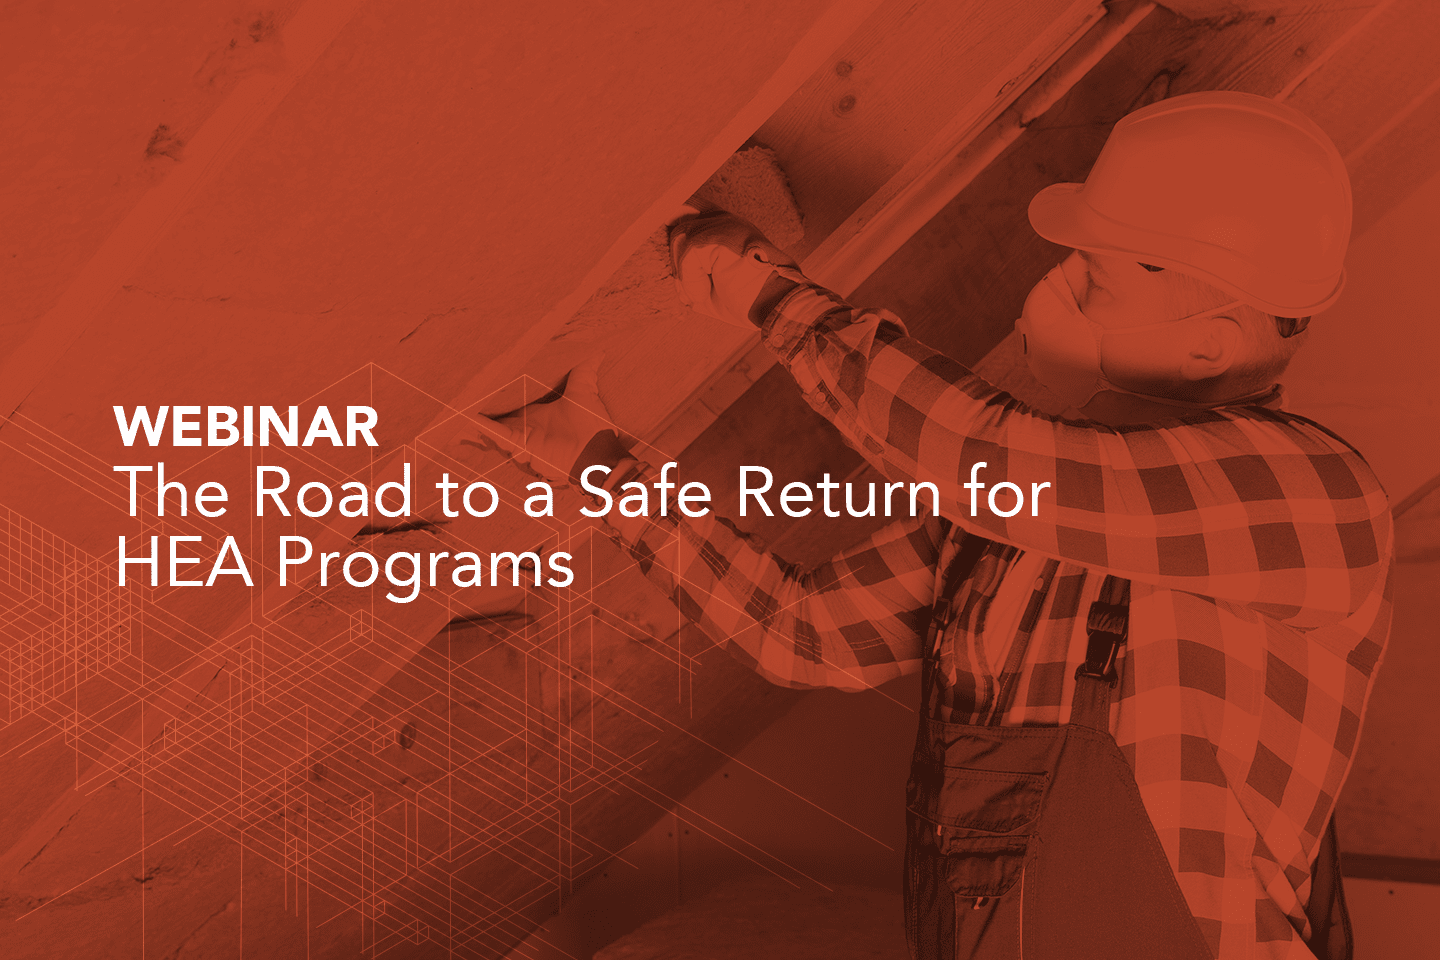 Safe return to HEA programs